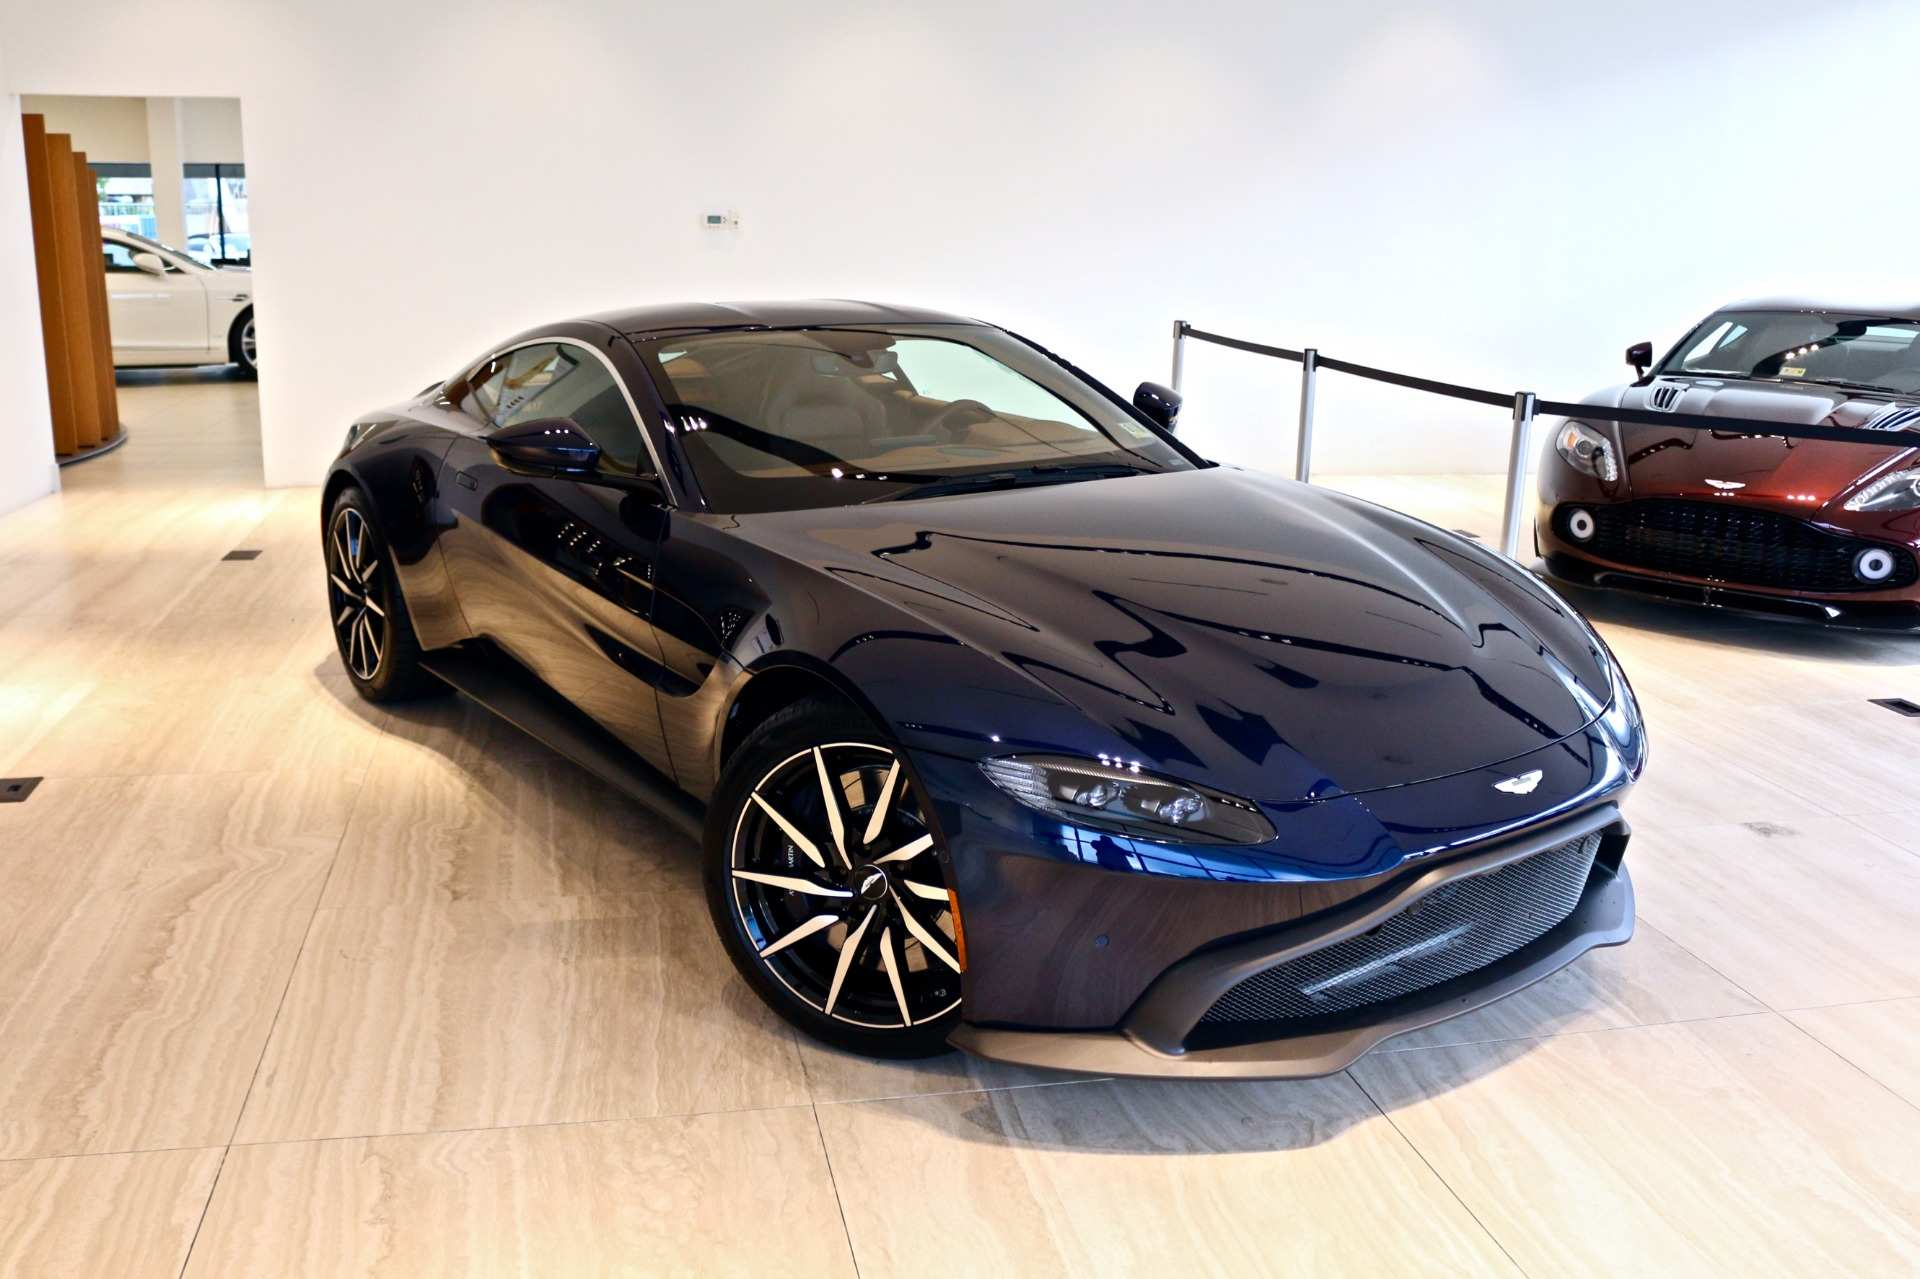 93 All New 2019 Aston Martin Vantage Msrp Exterior and Interior for 2019 Aston Martin Vantage Msrp